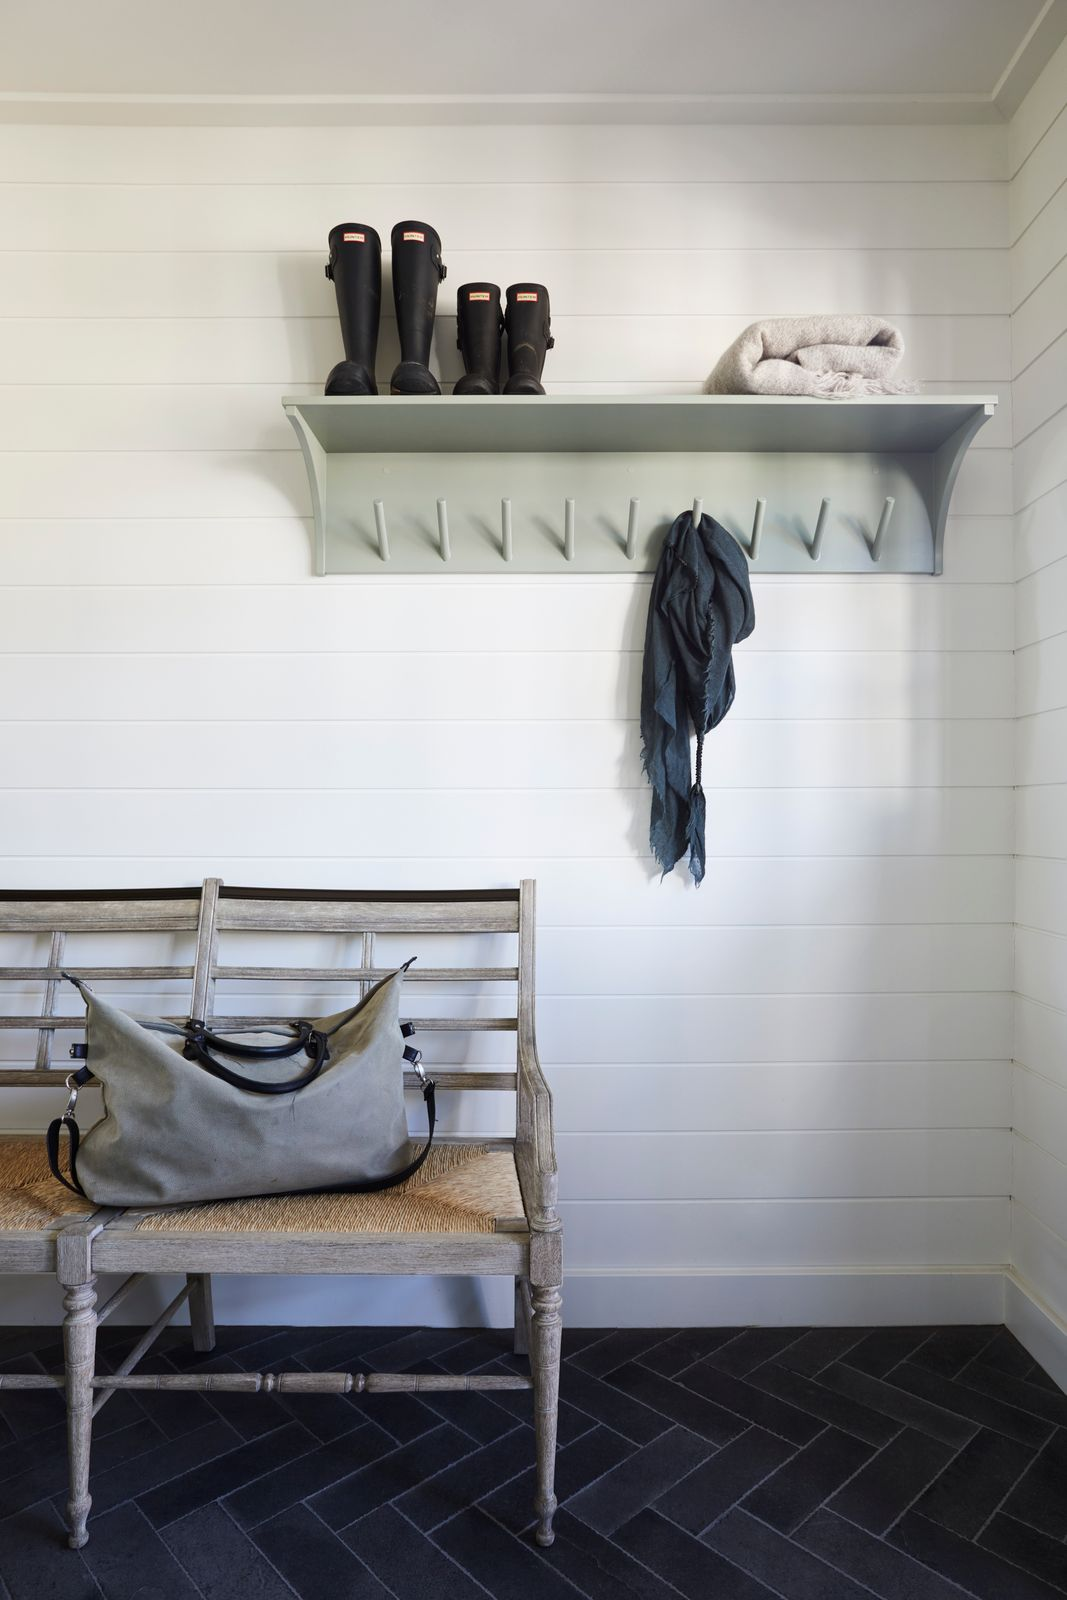 Shelving and sitting space for mudroom